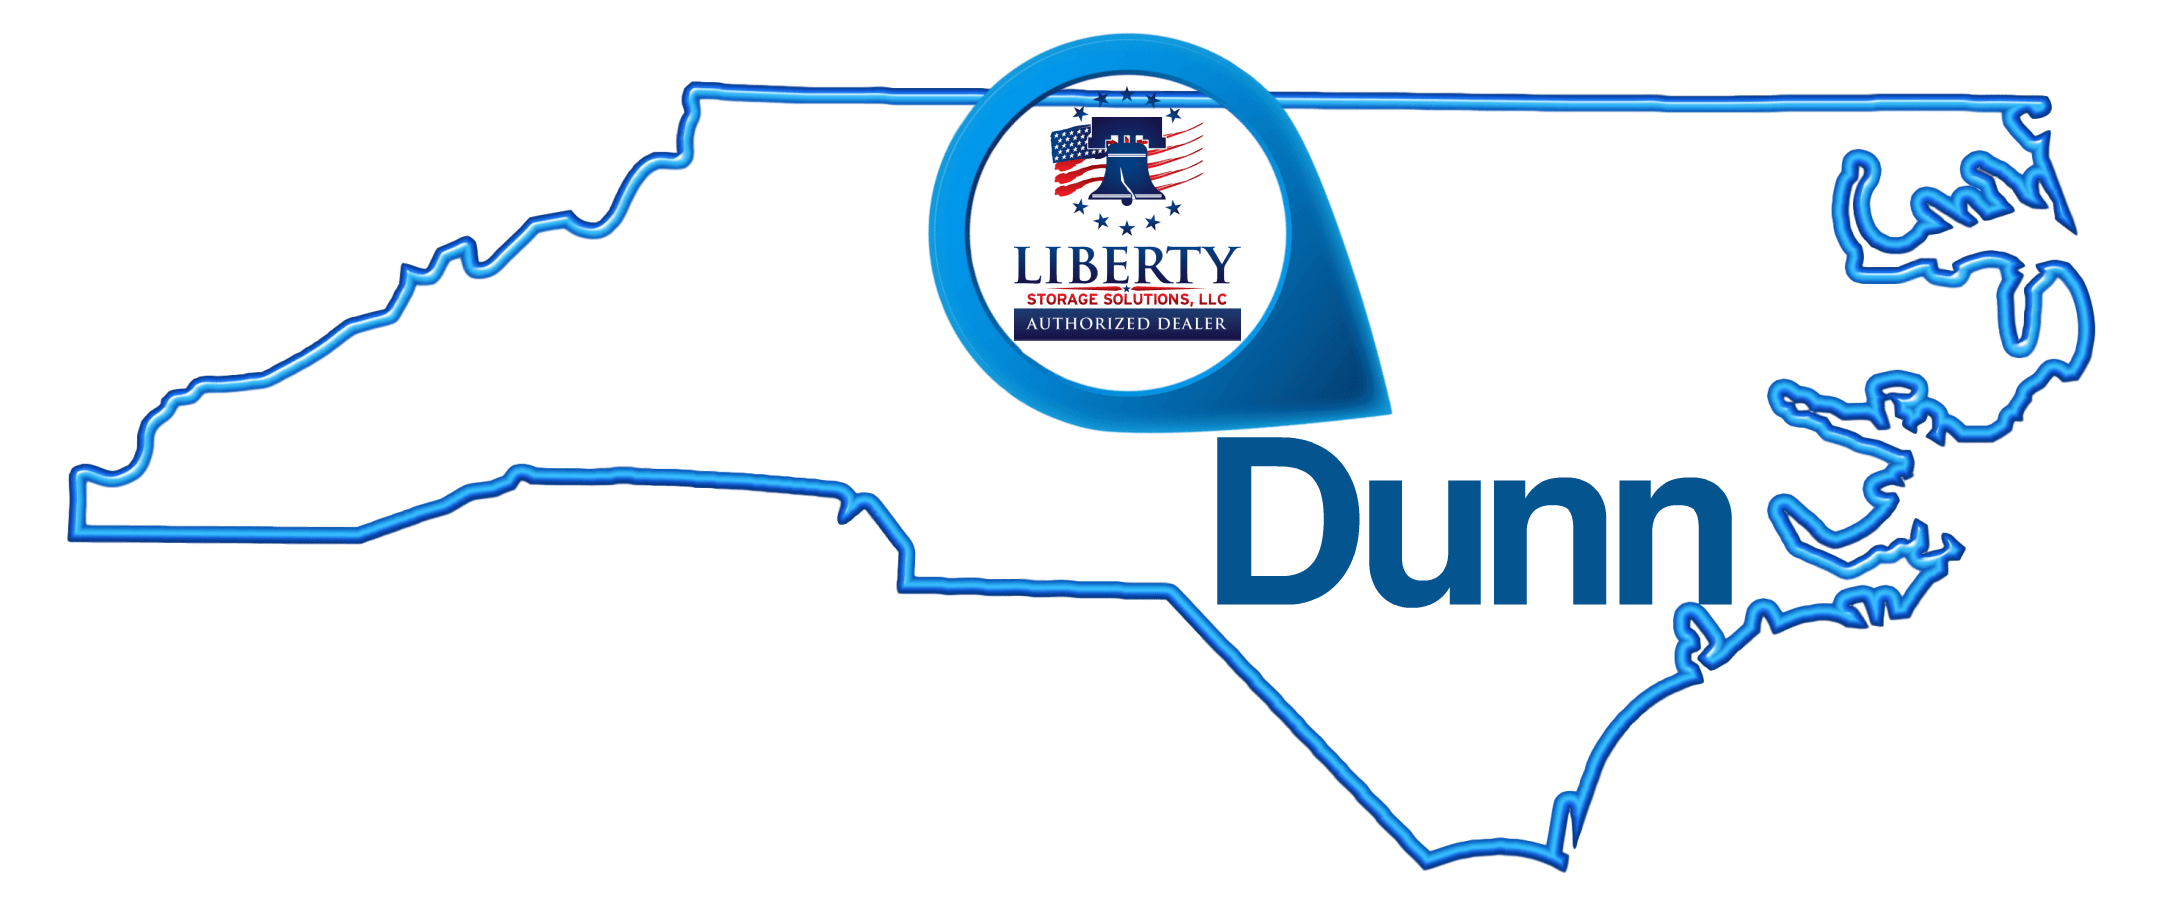 Dunn-map.png